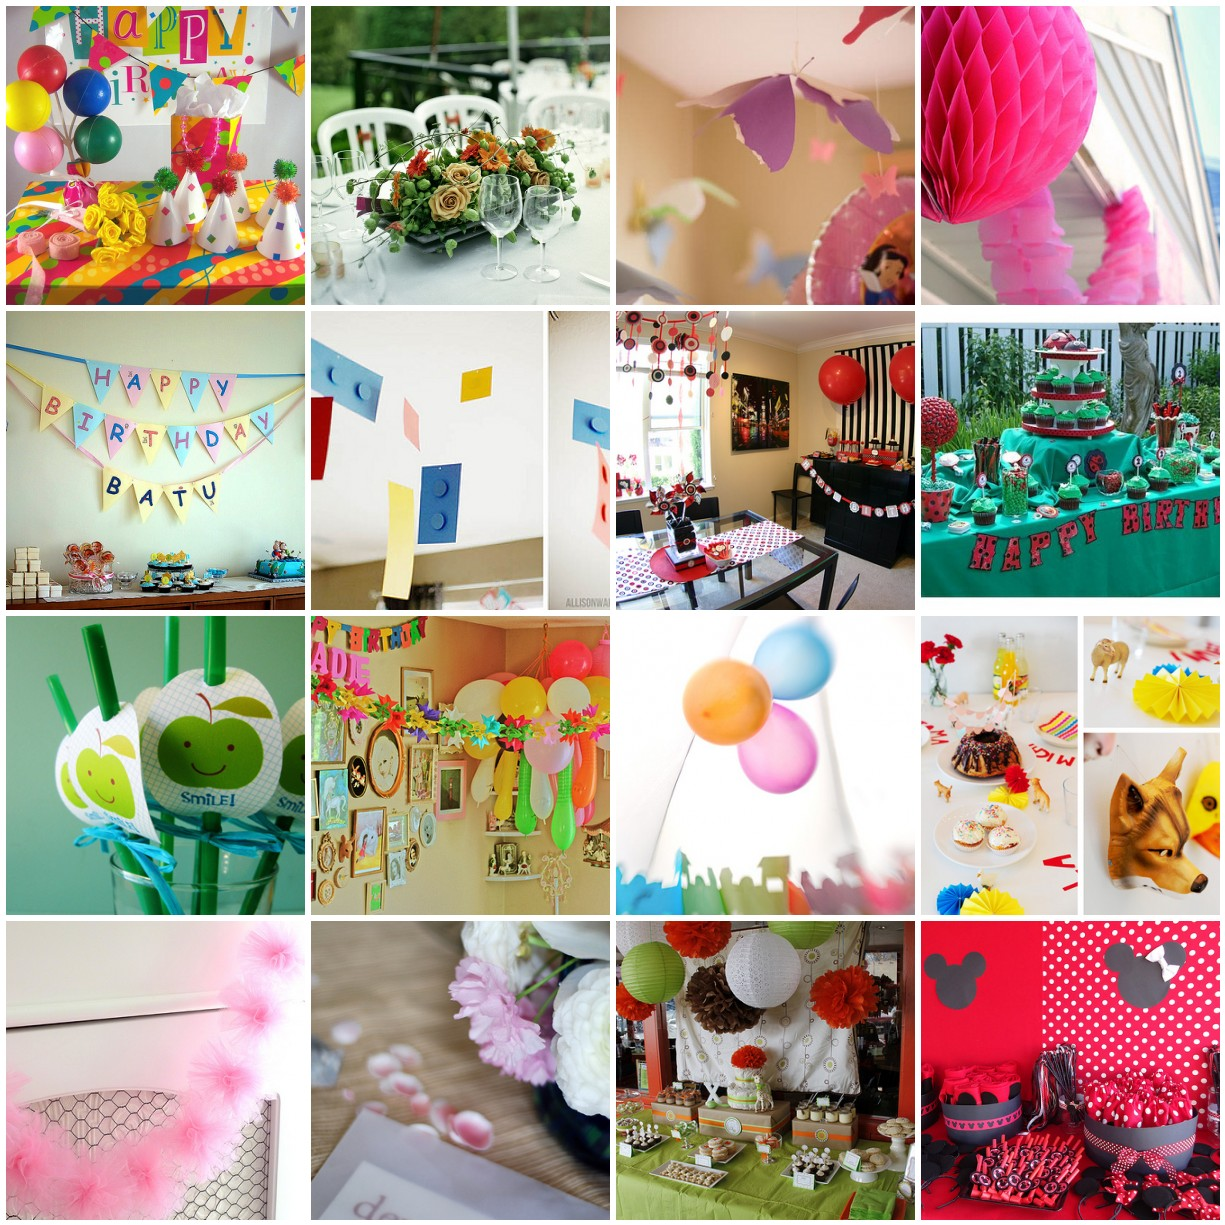 Decoration party party favors ideas for Home decorations for birthday